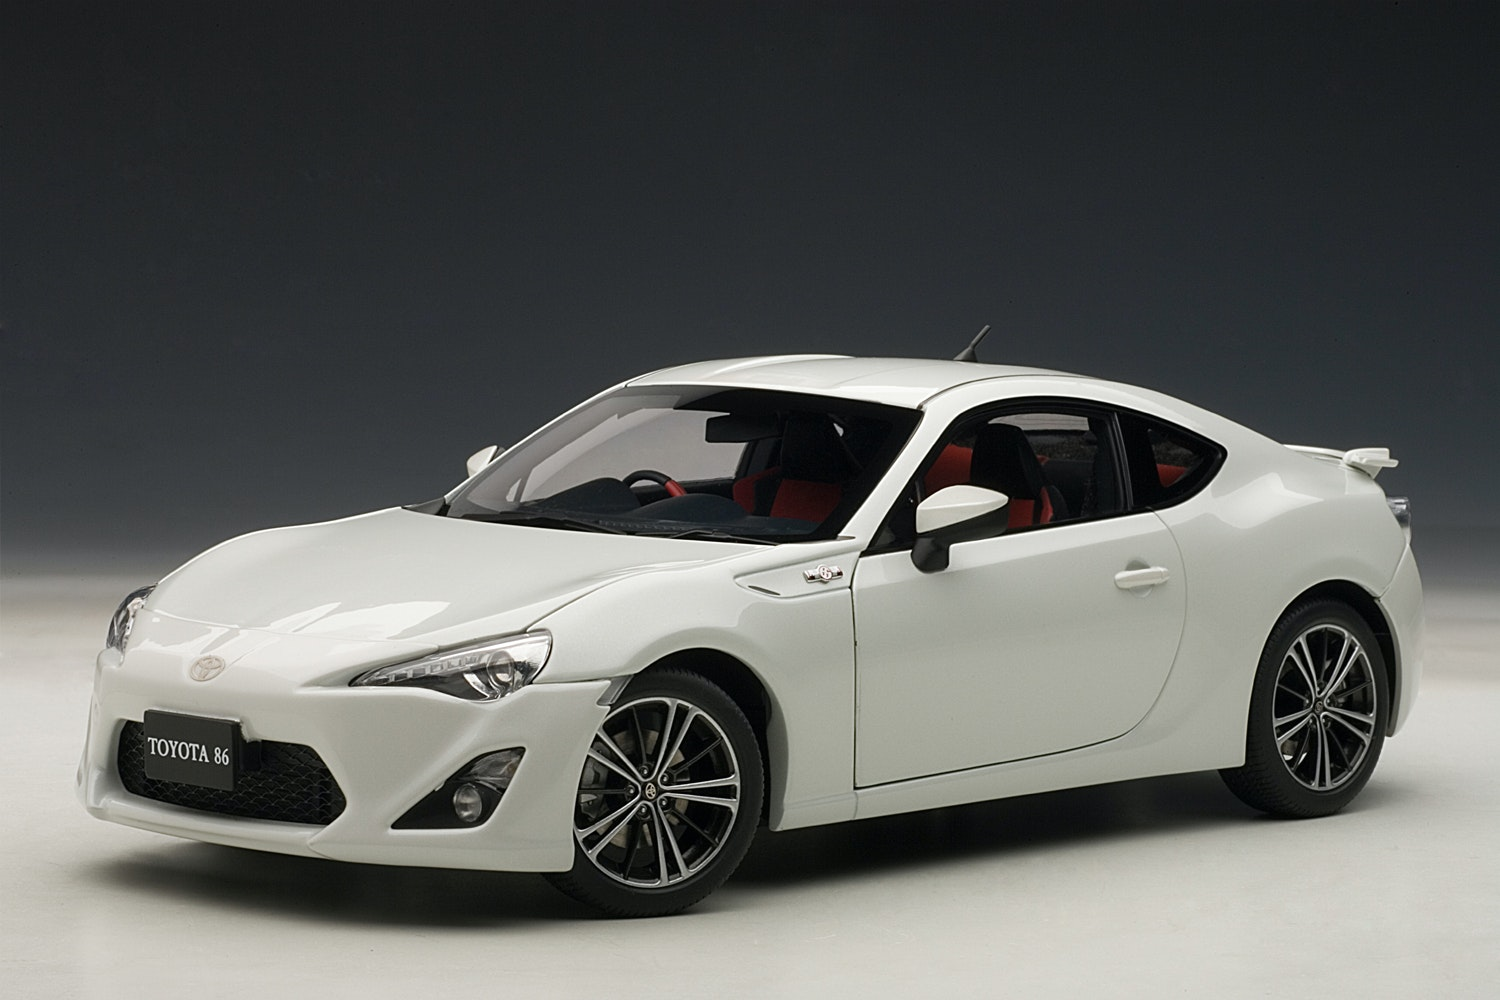 """Toyota 86 GT """"Limited Asian Version/RHD - White Pearl"""